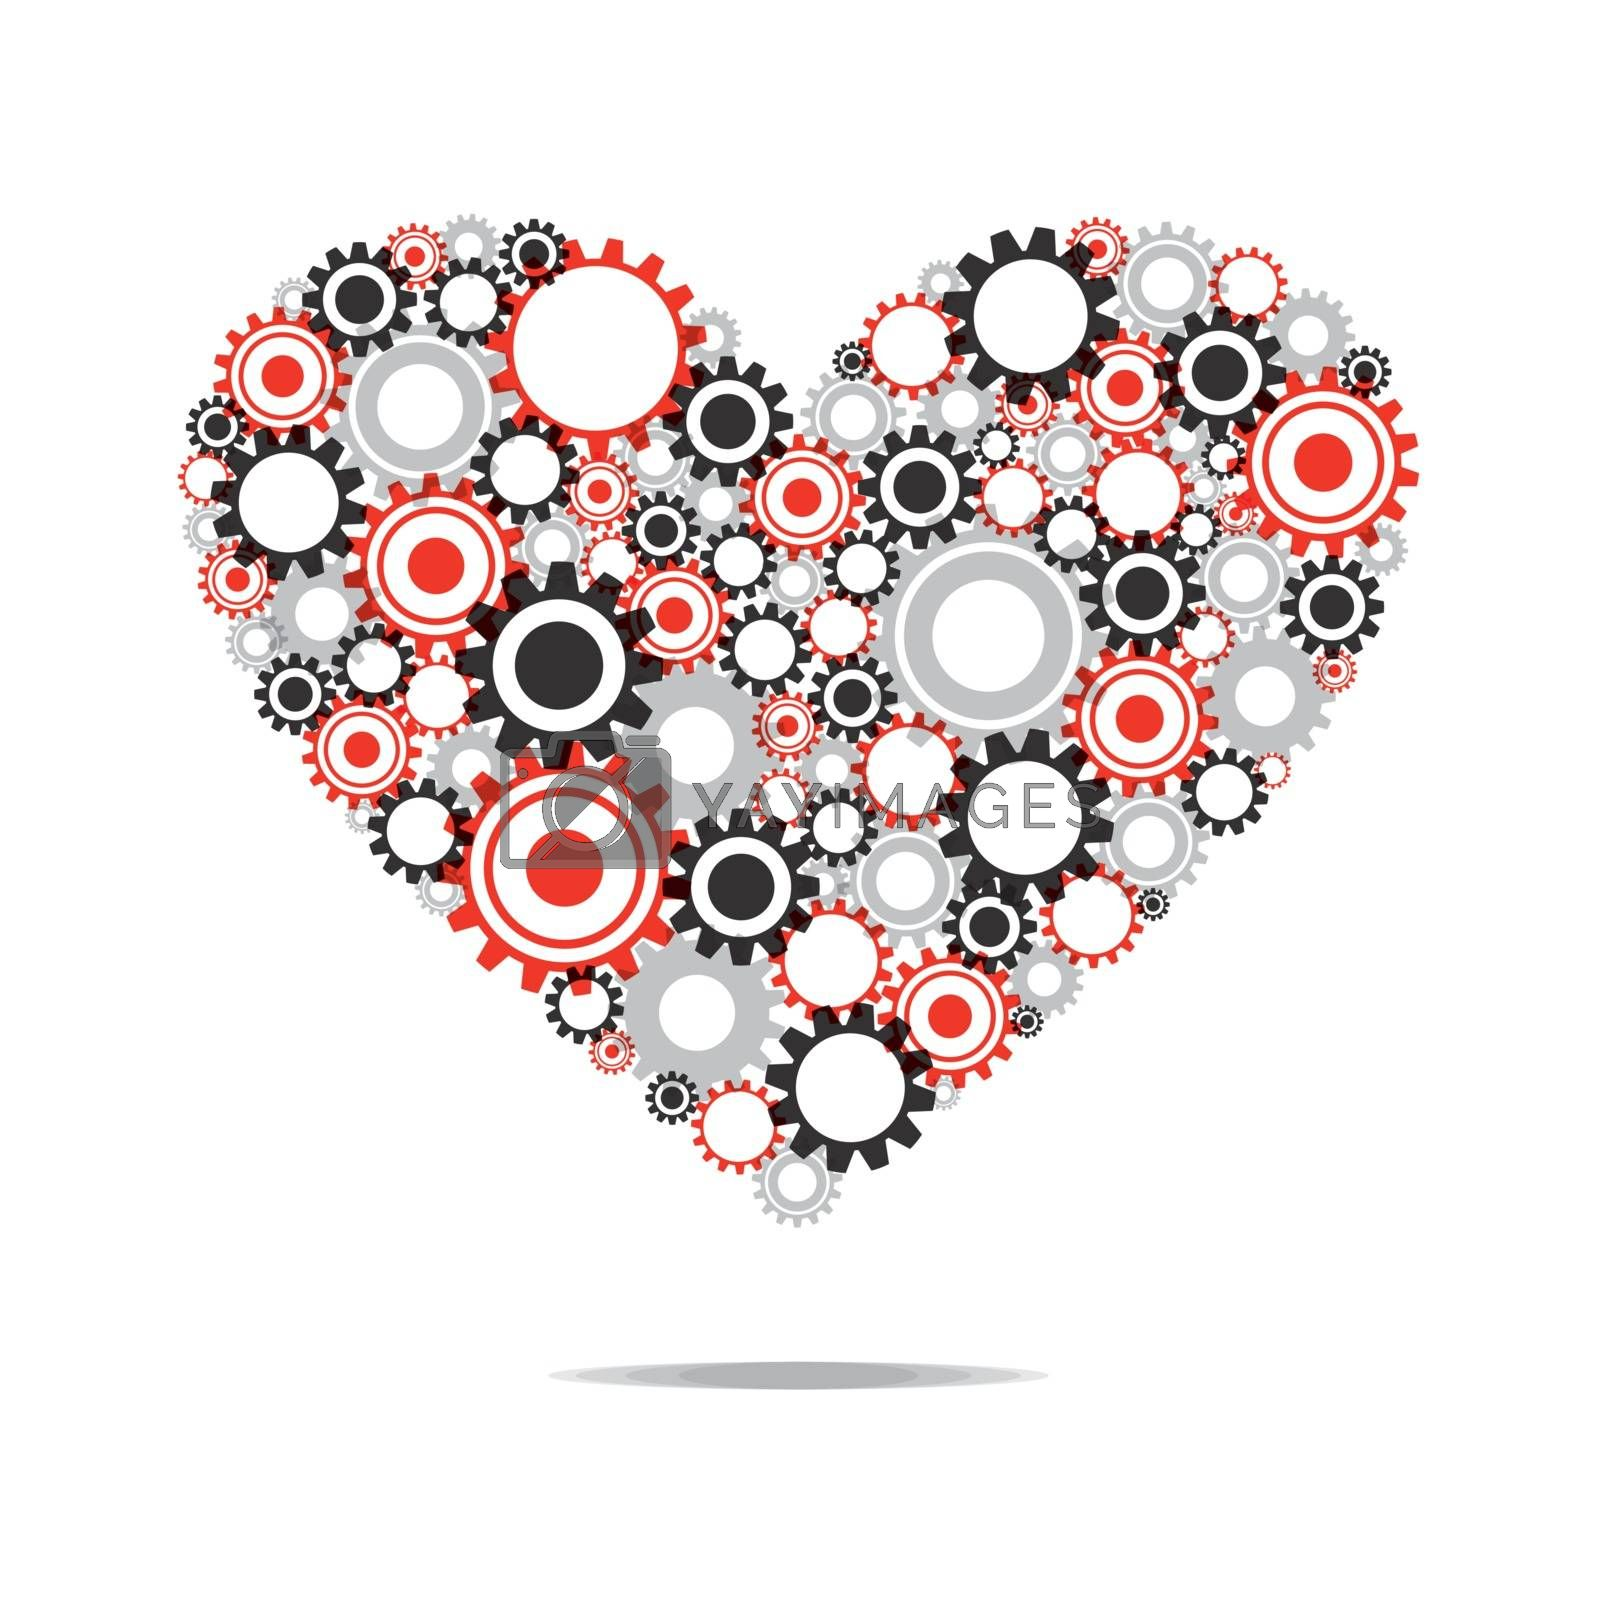 Royalty free image of Abstract Heart by nicousnake